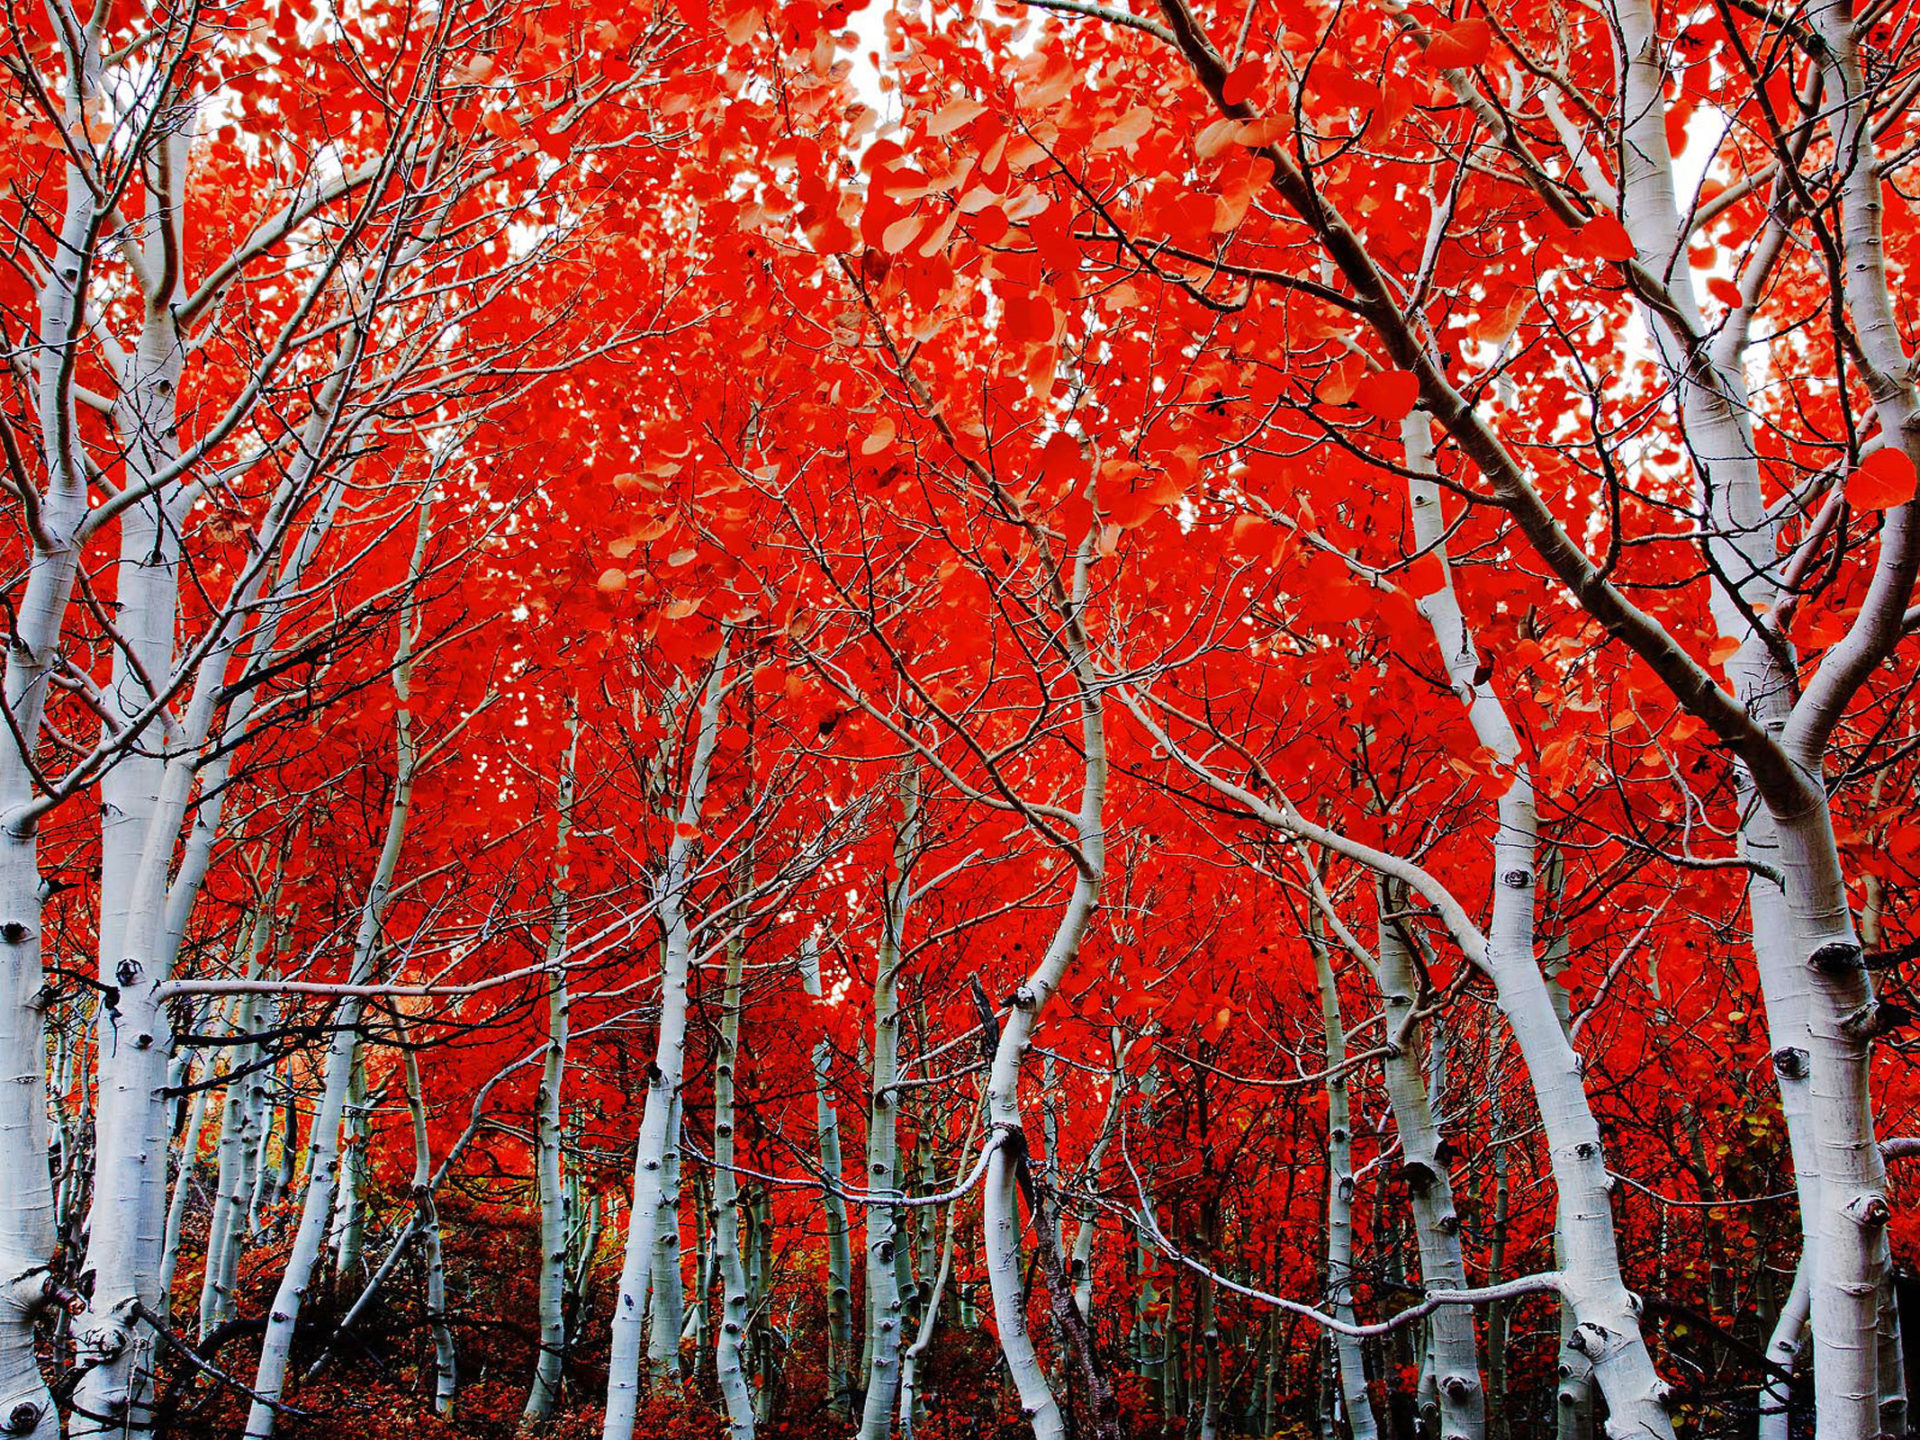 Fall Trees Iphone Wallpaper Fall Birch Red Leaves Hd Wallpaper 2560x1600